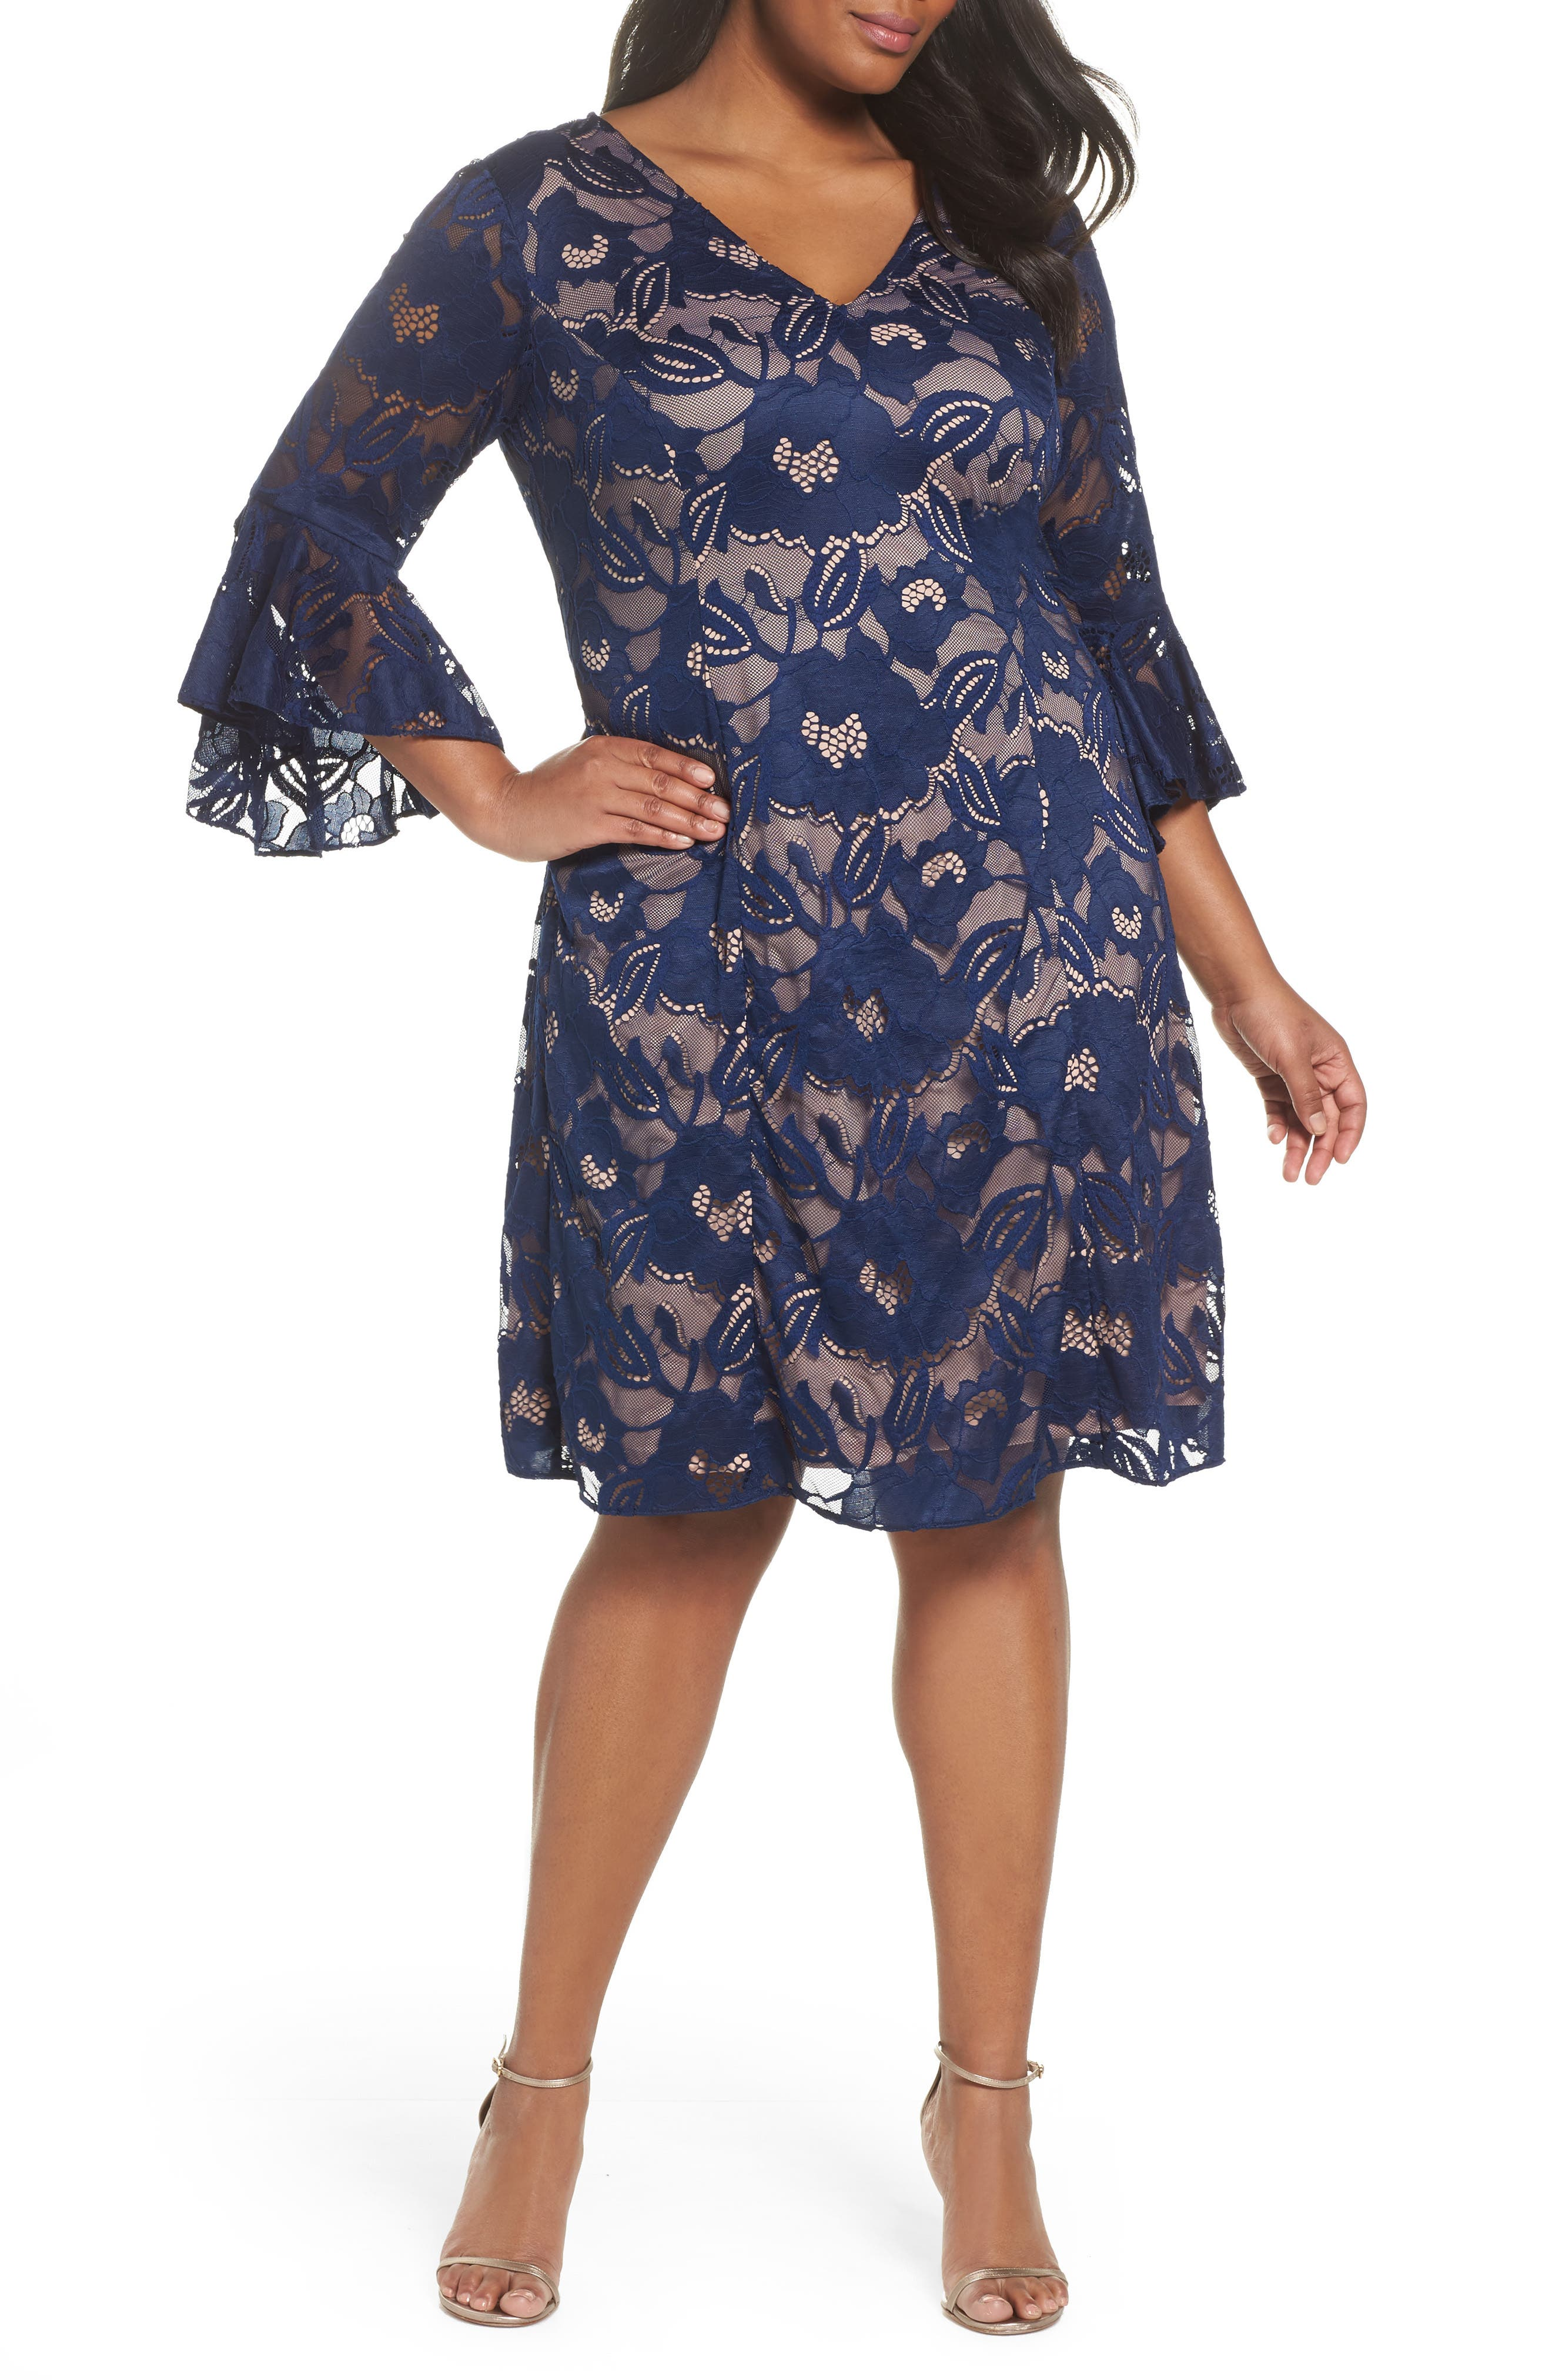 Alternate Image 1 Selected - Adrianna Papell Ruffle Sleeve Lace Dress (Plus Size)